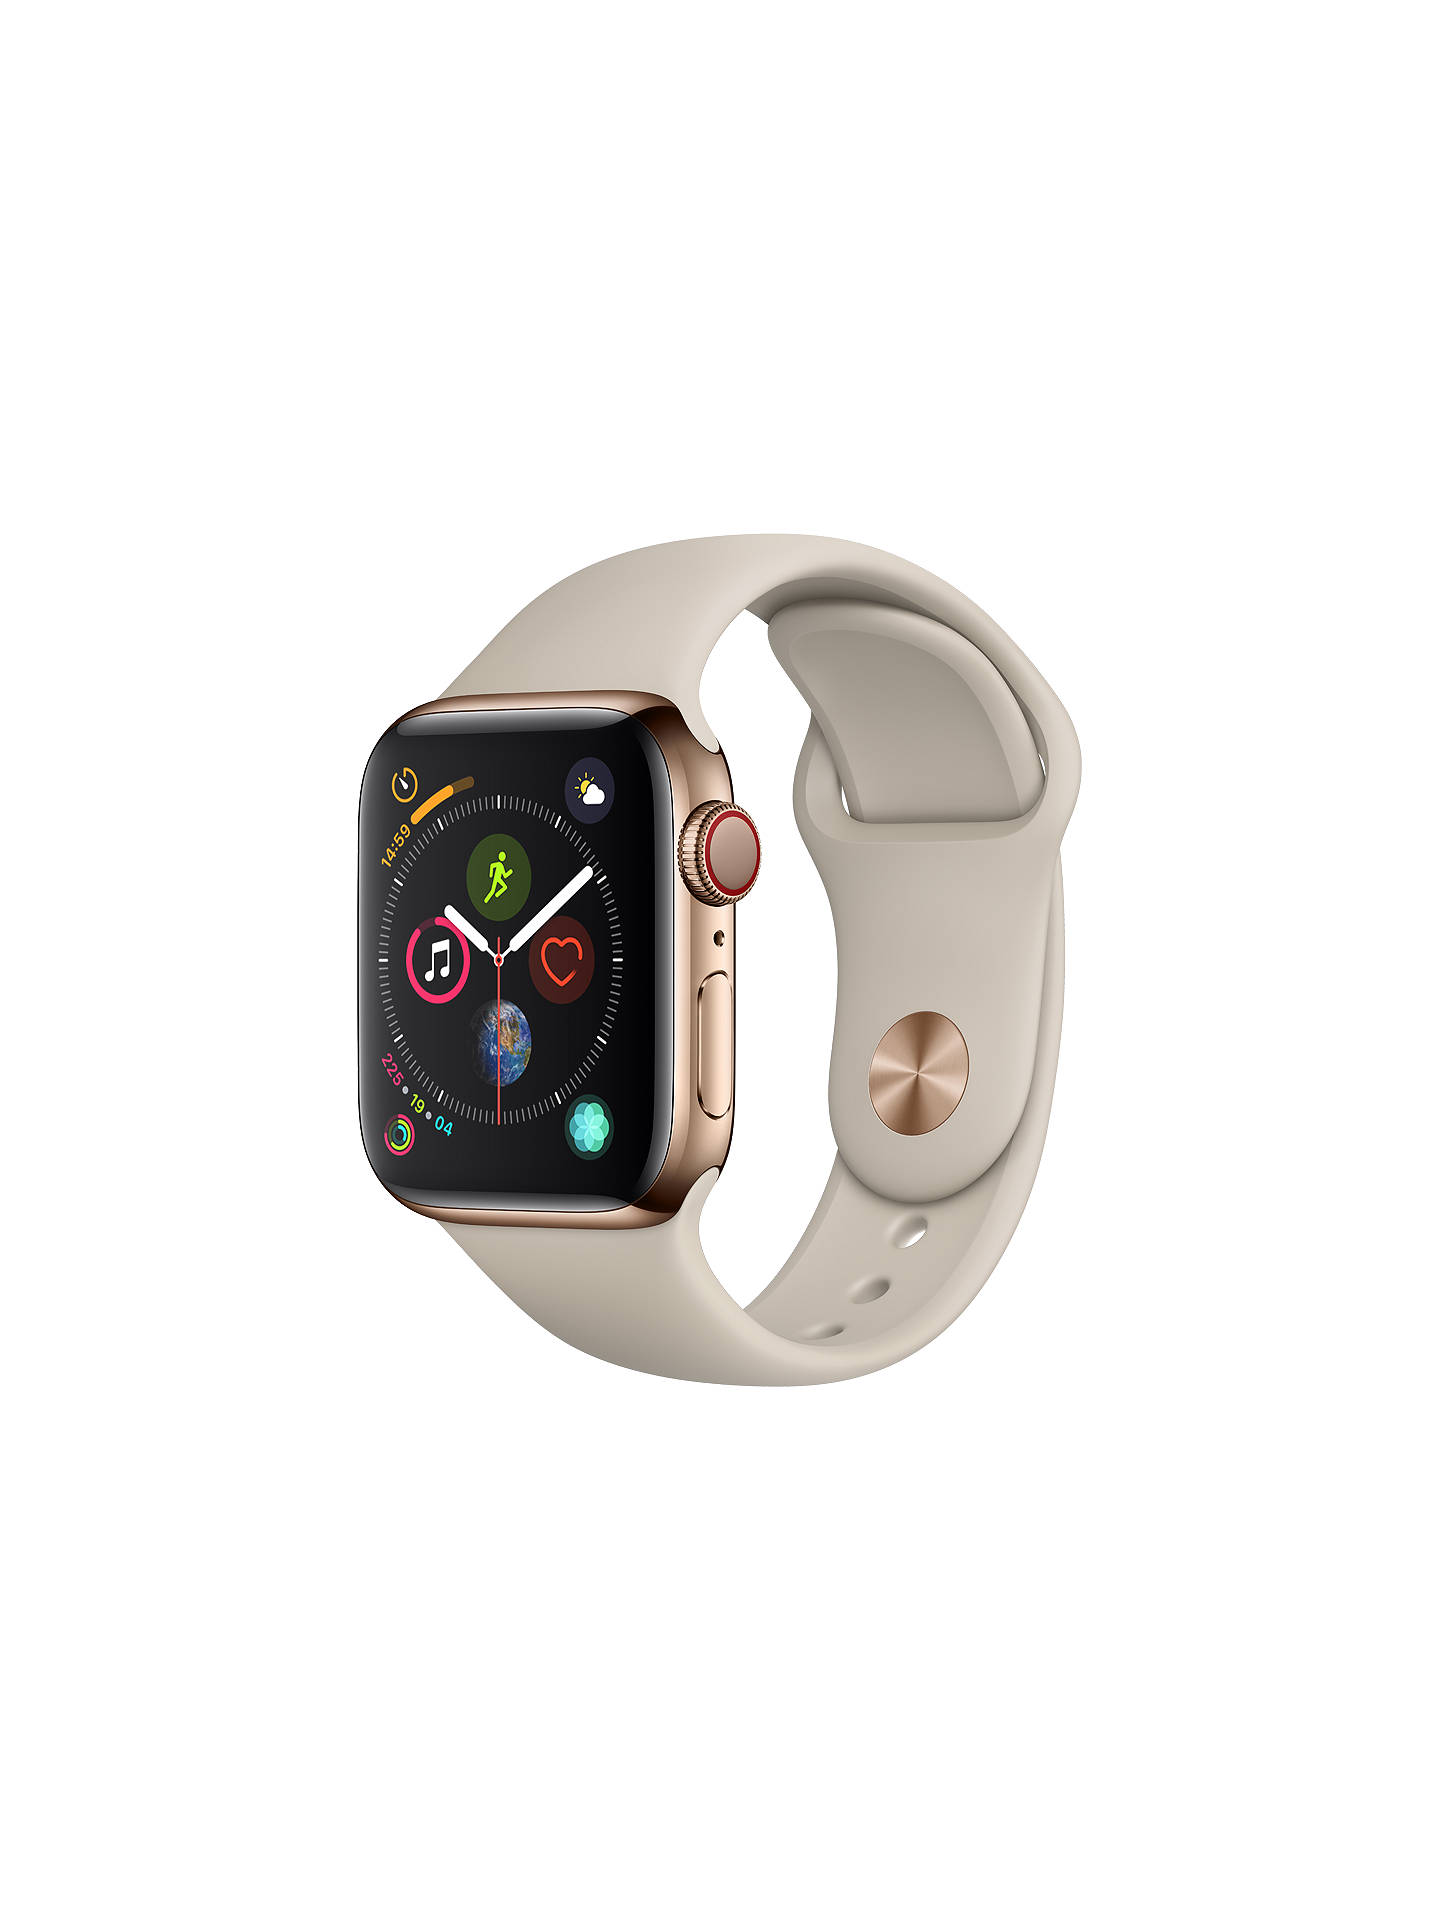 Apple Watch Series 4 Gps And Cellular 40mm Gold Stainless Steel Huawei With Link Band Us Warranty Buyapple Case Sport